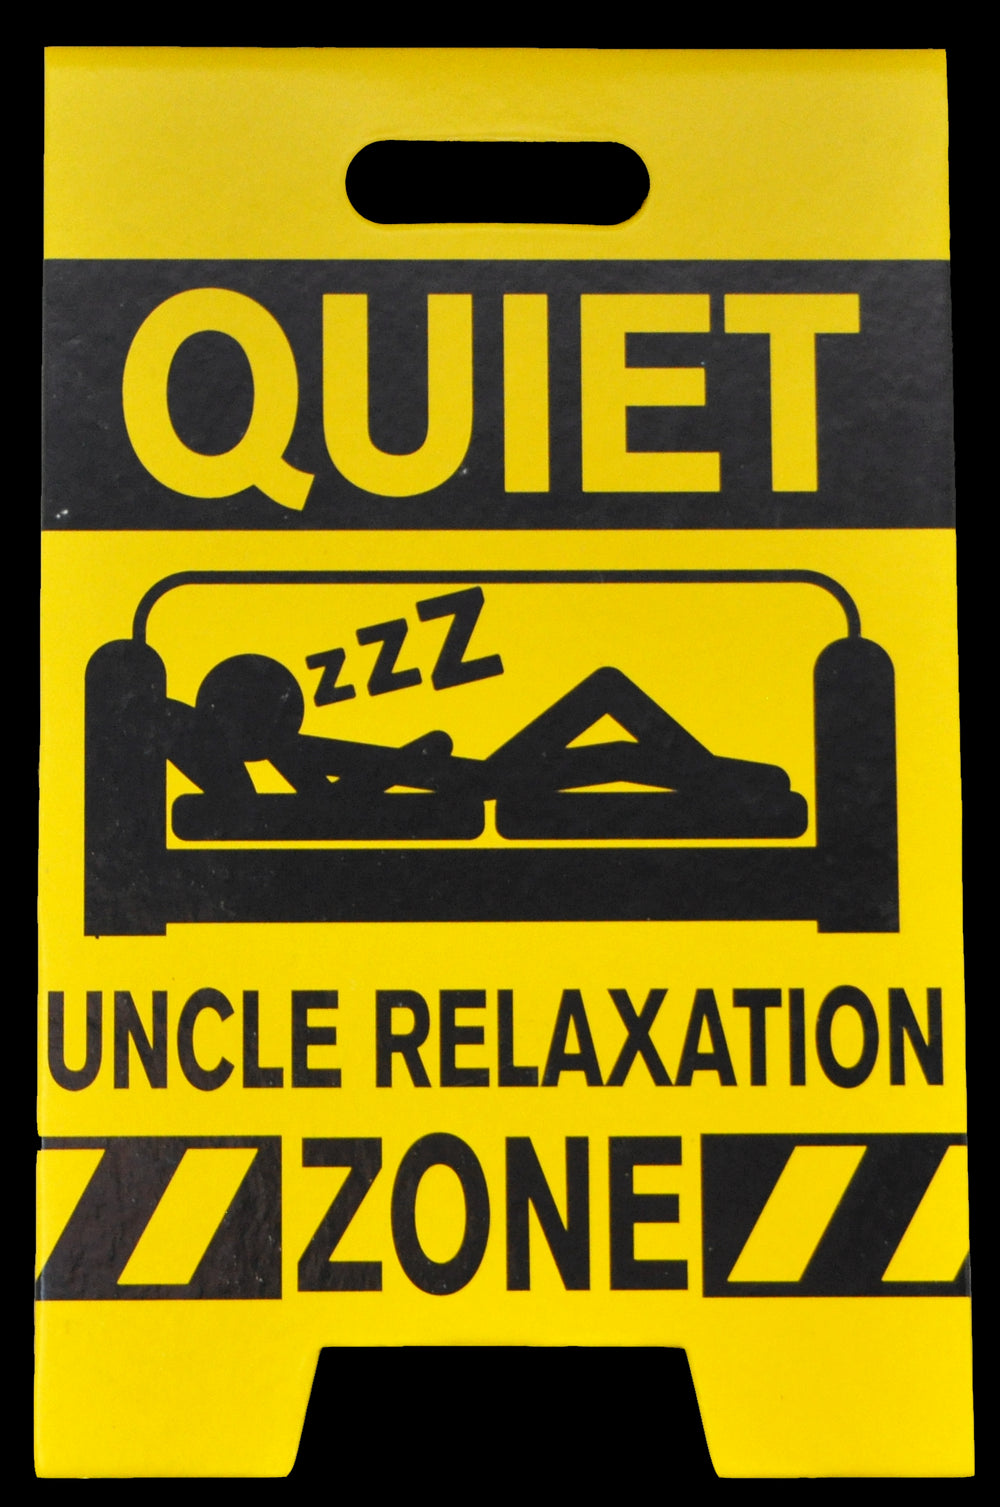 Uncle Relaxation Zone